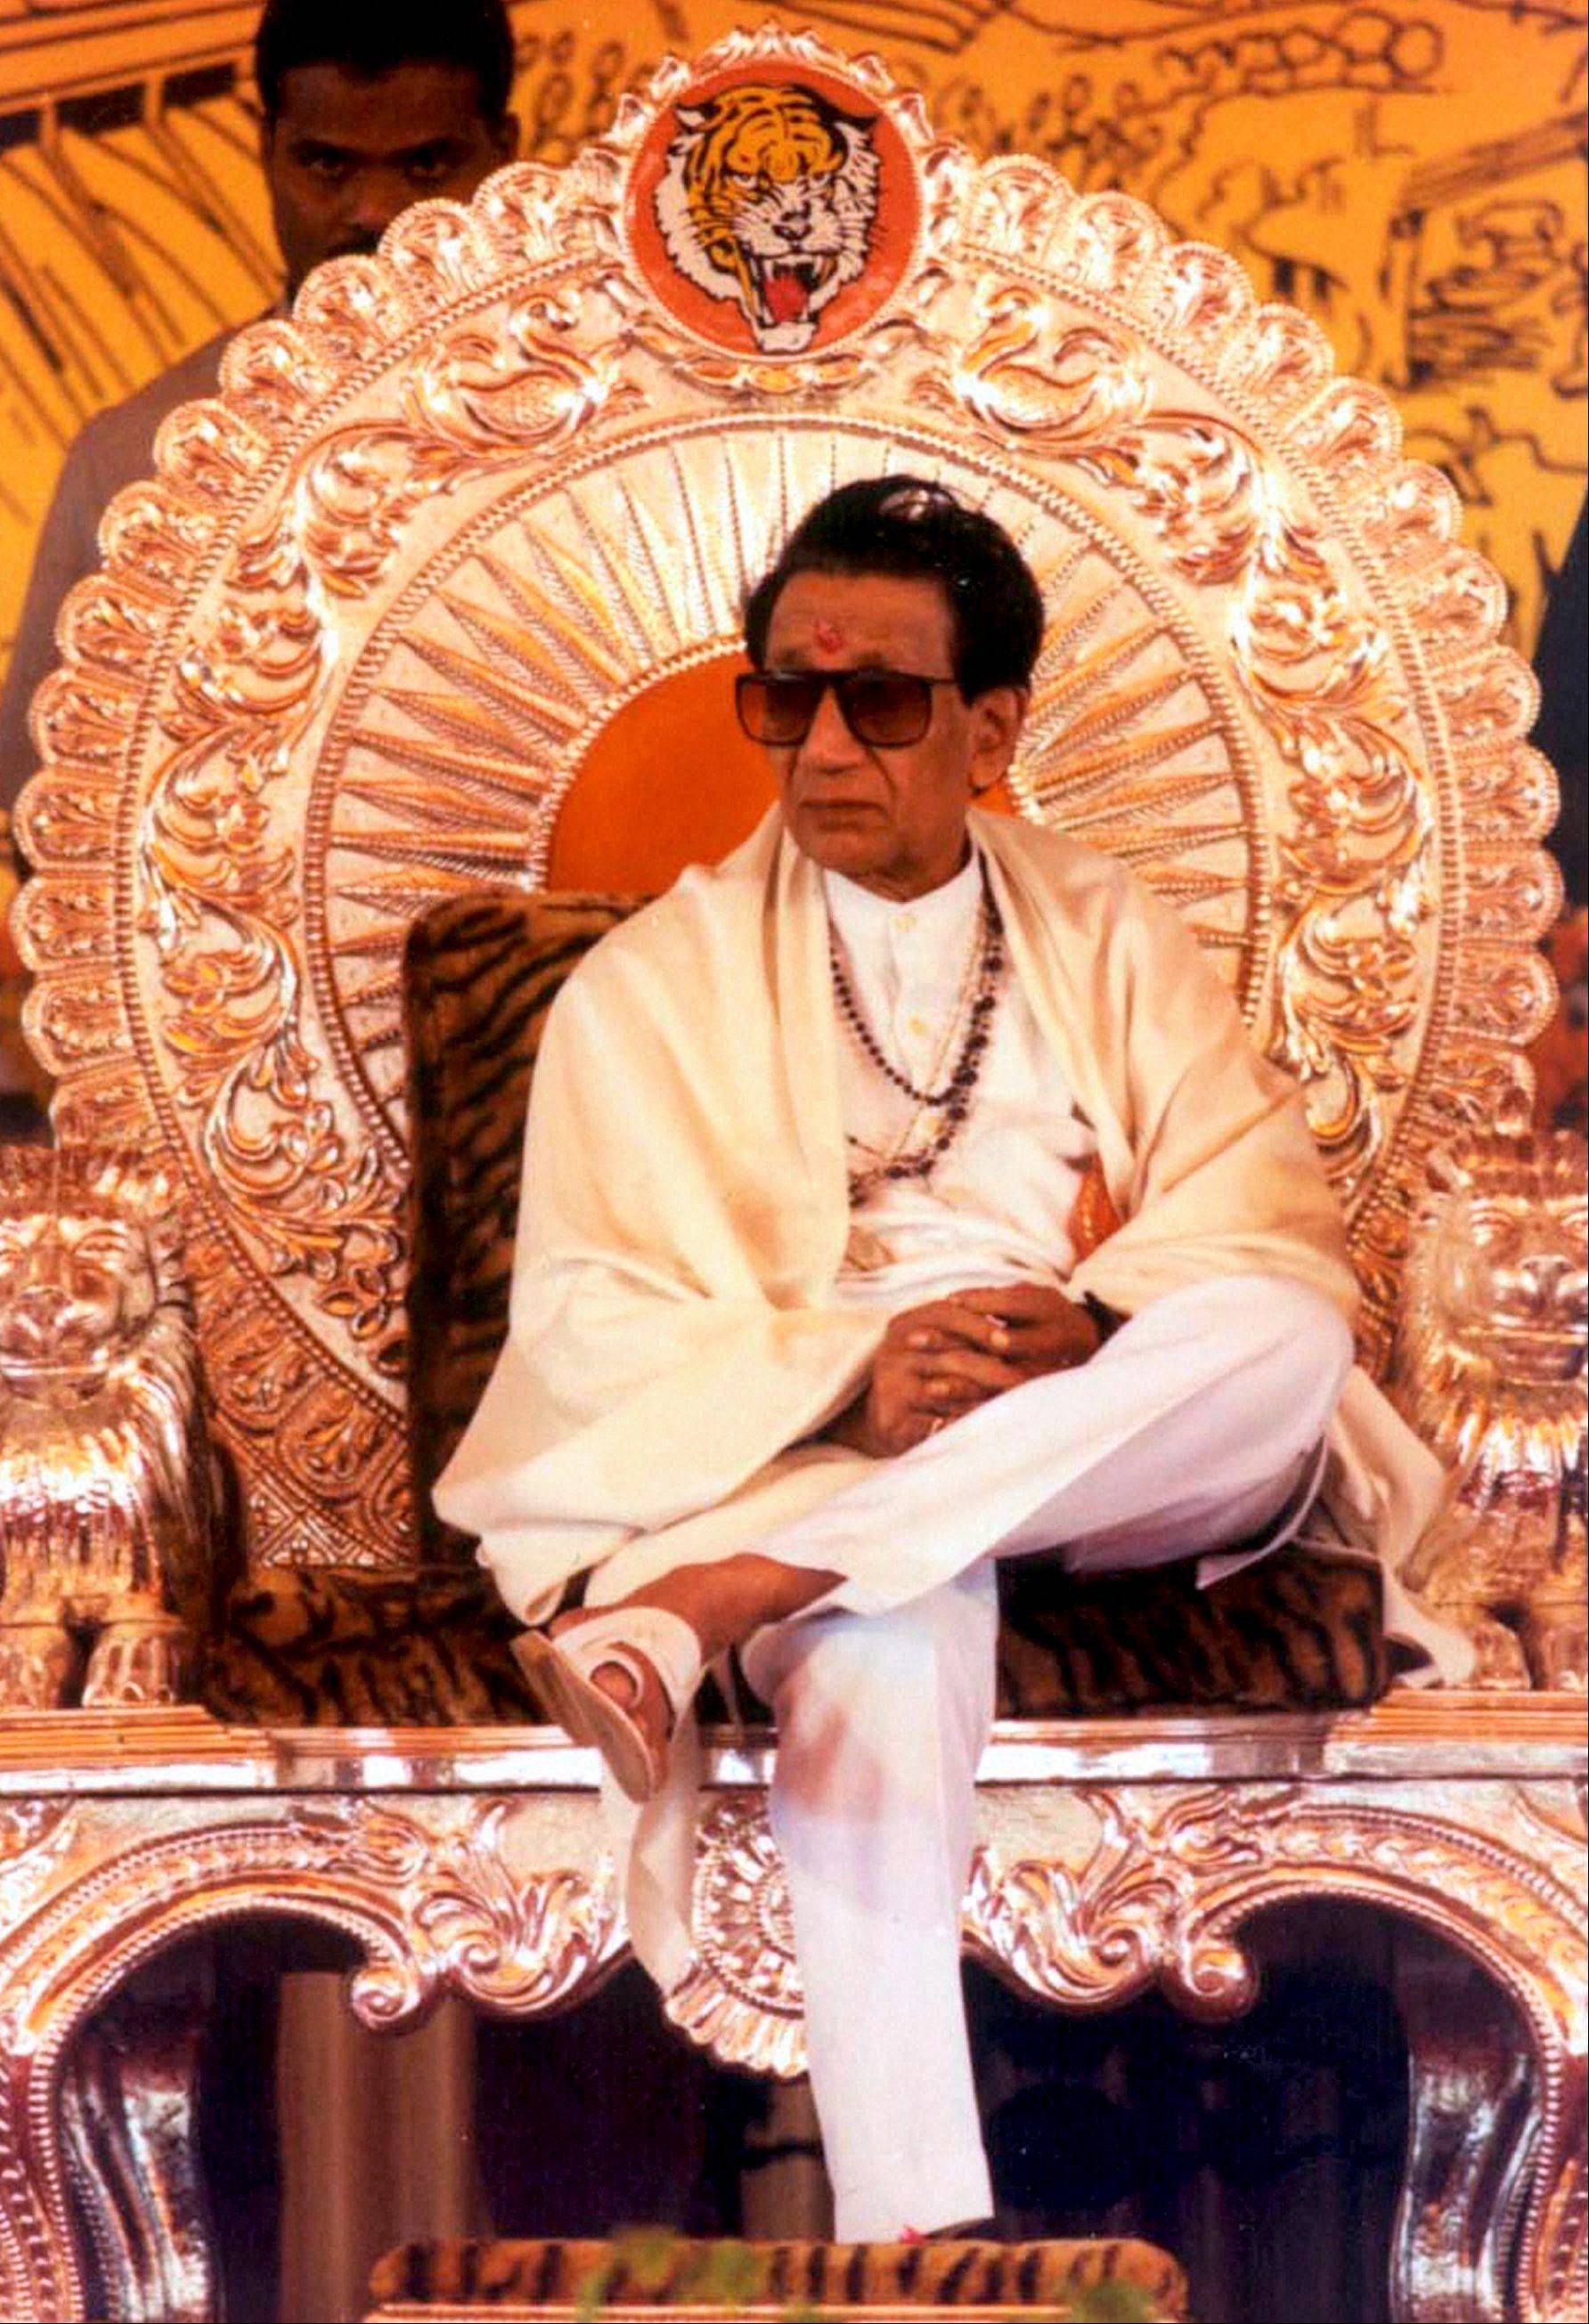 Hindu nationalist party chief Shiv Sena chief Bal Thackeray.